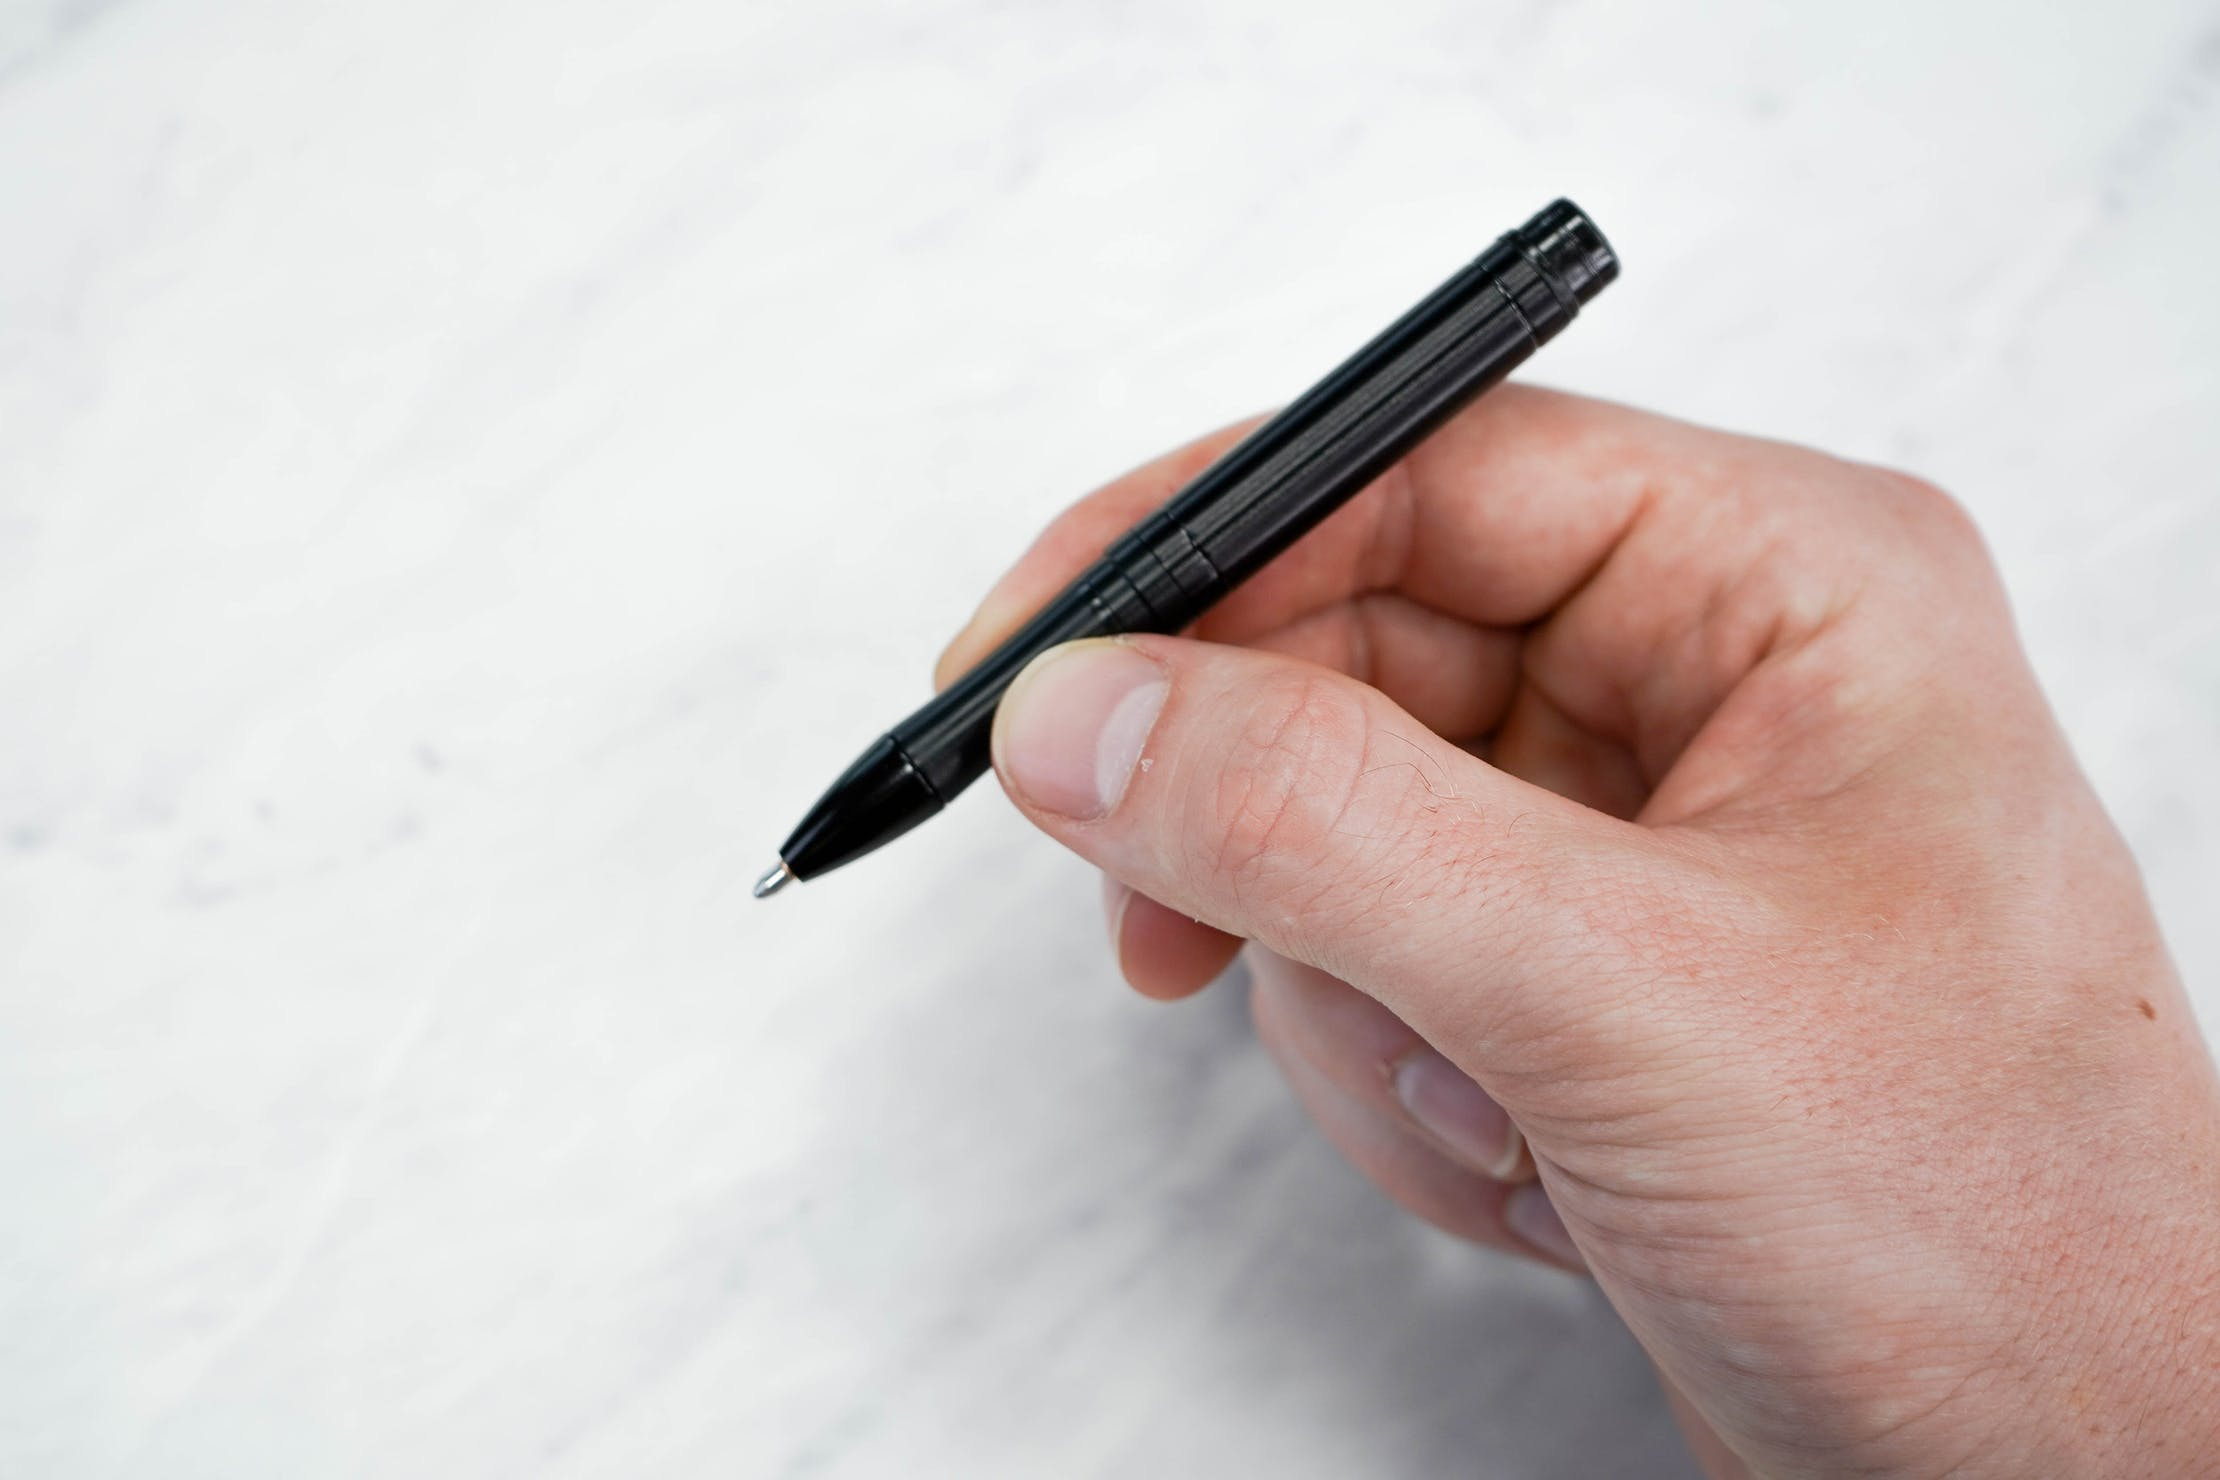 Fisher Backpacker Space Pen Small In Hand